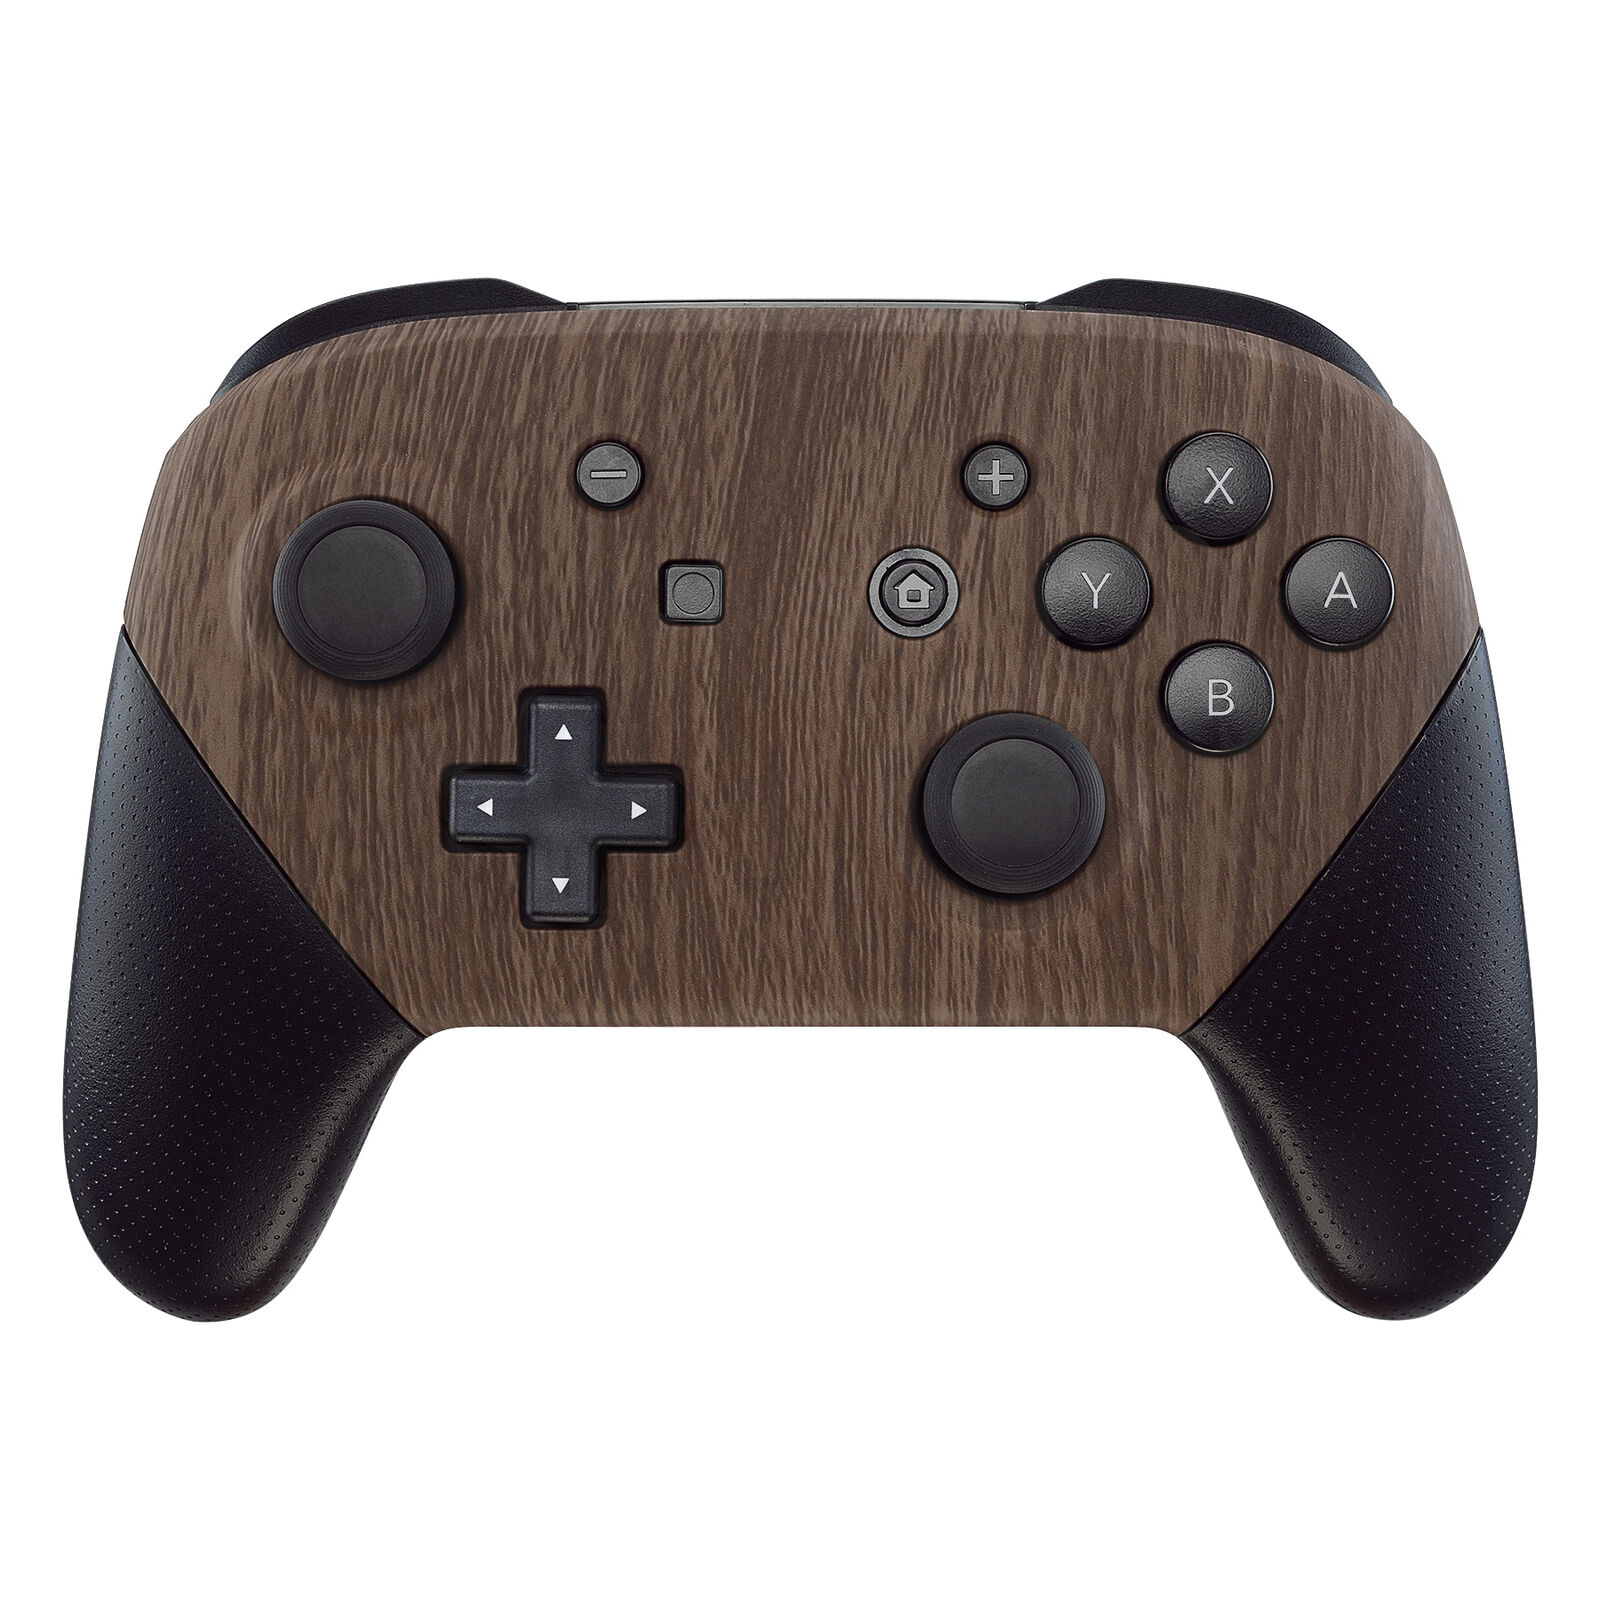 Nintendo Switch Pro Controller Black and Wood Grain Faceplate